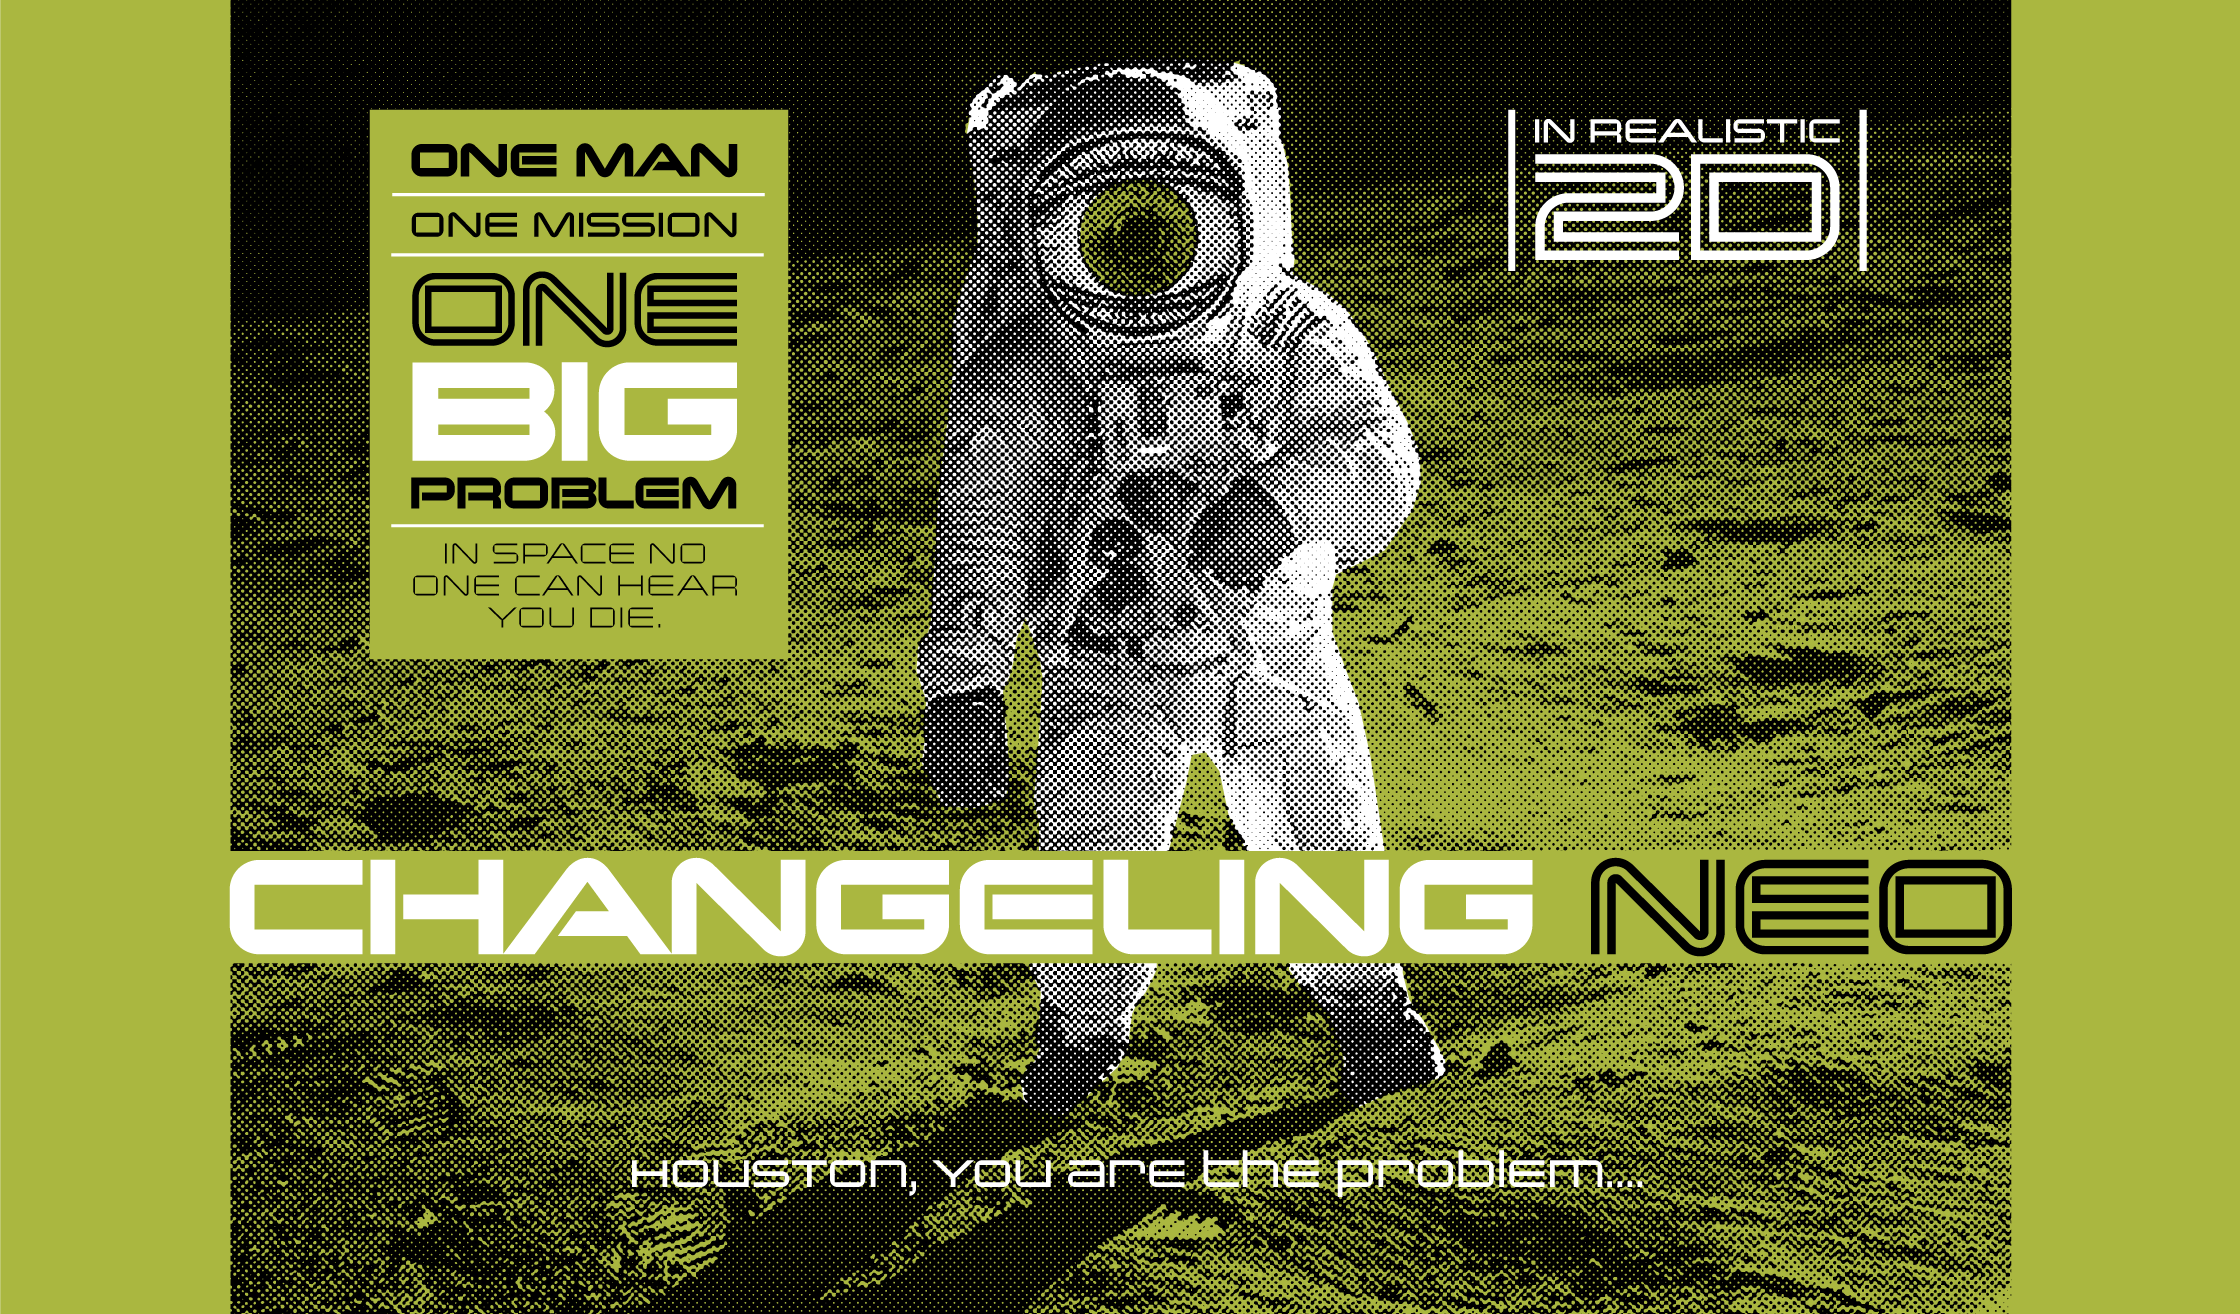 Changeling Neo Banner Sample 2240